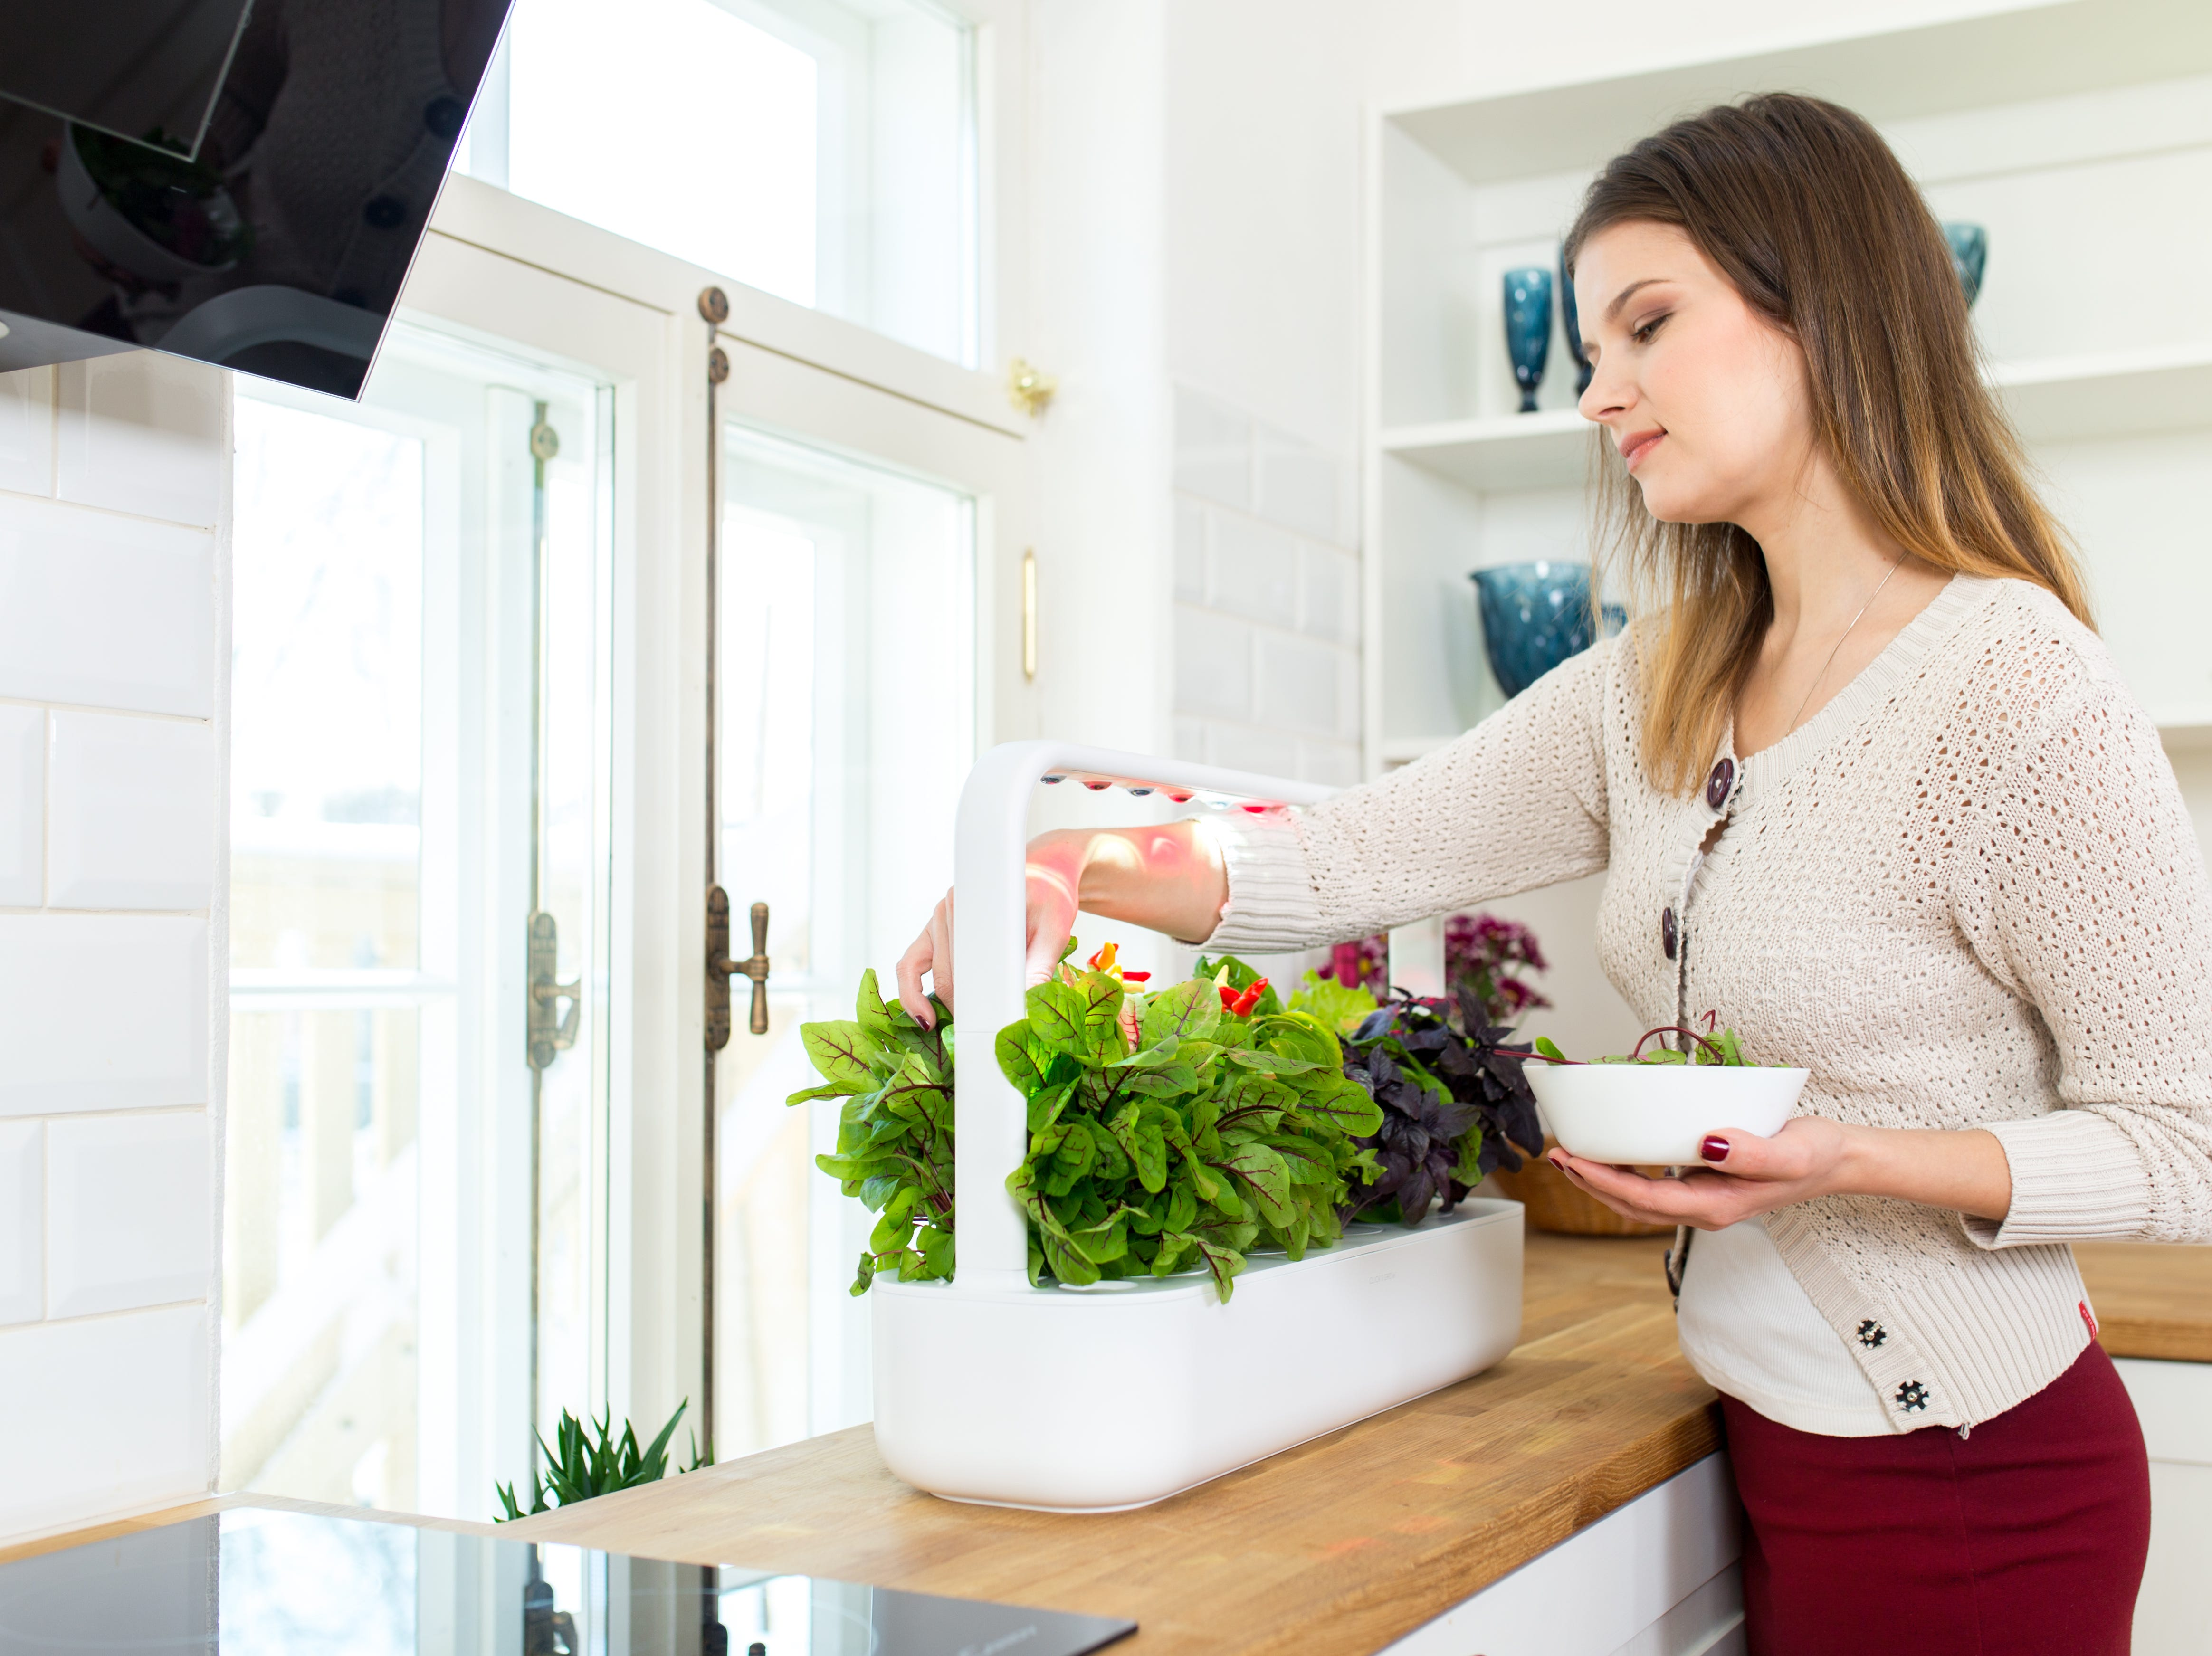 The Click & Grow Smart Garden ($199.95) is a self-watering system that allows even the most amateur gardeners to quickly and effortlessly grow produce.